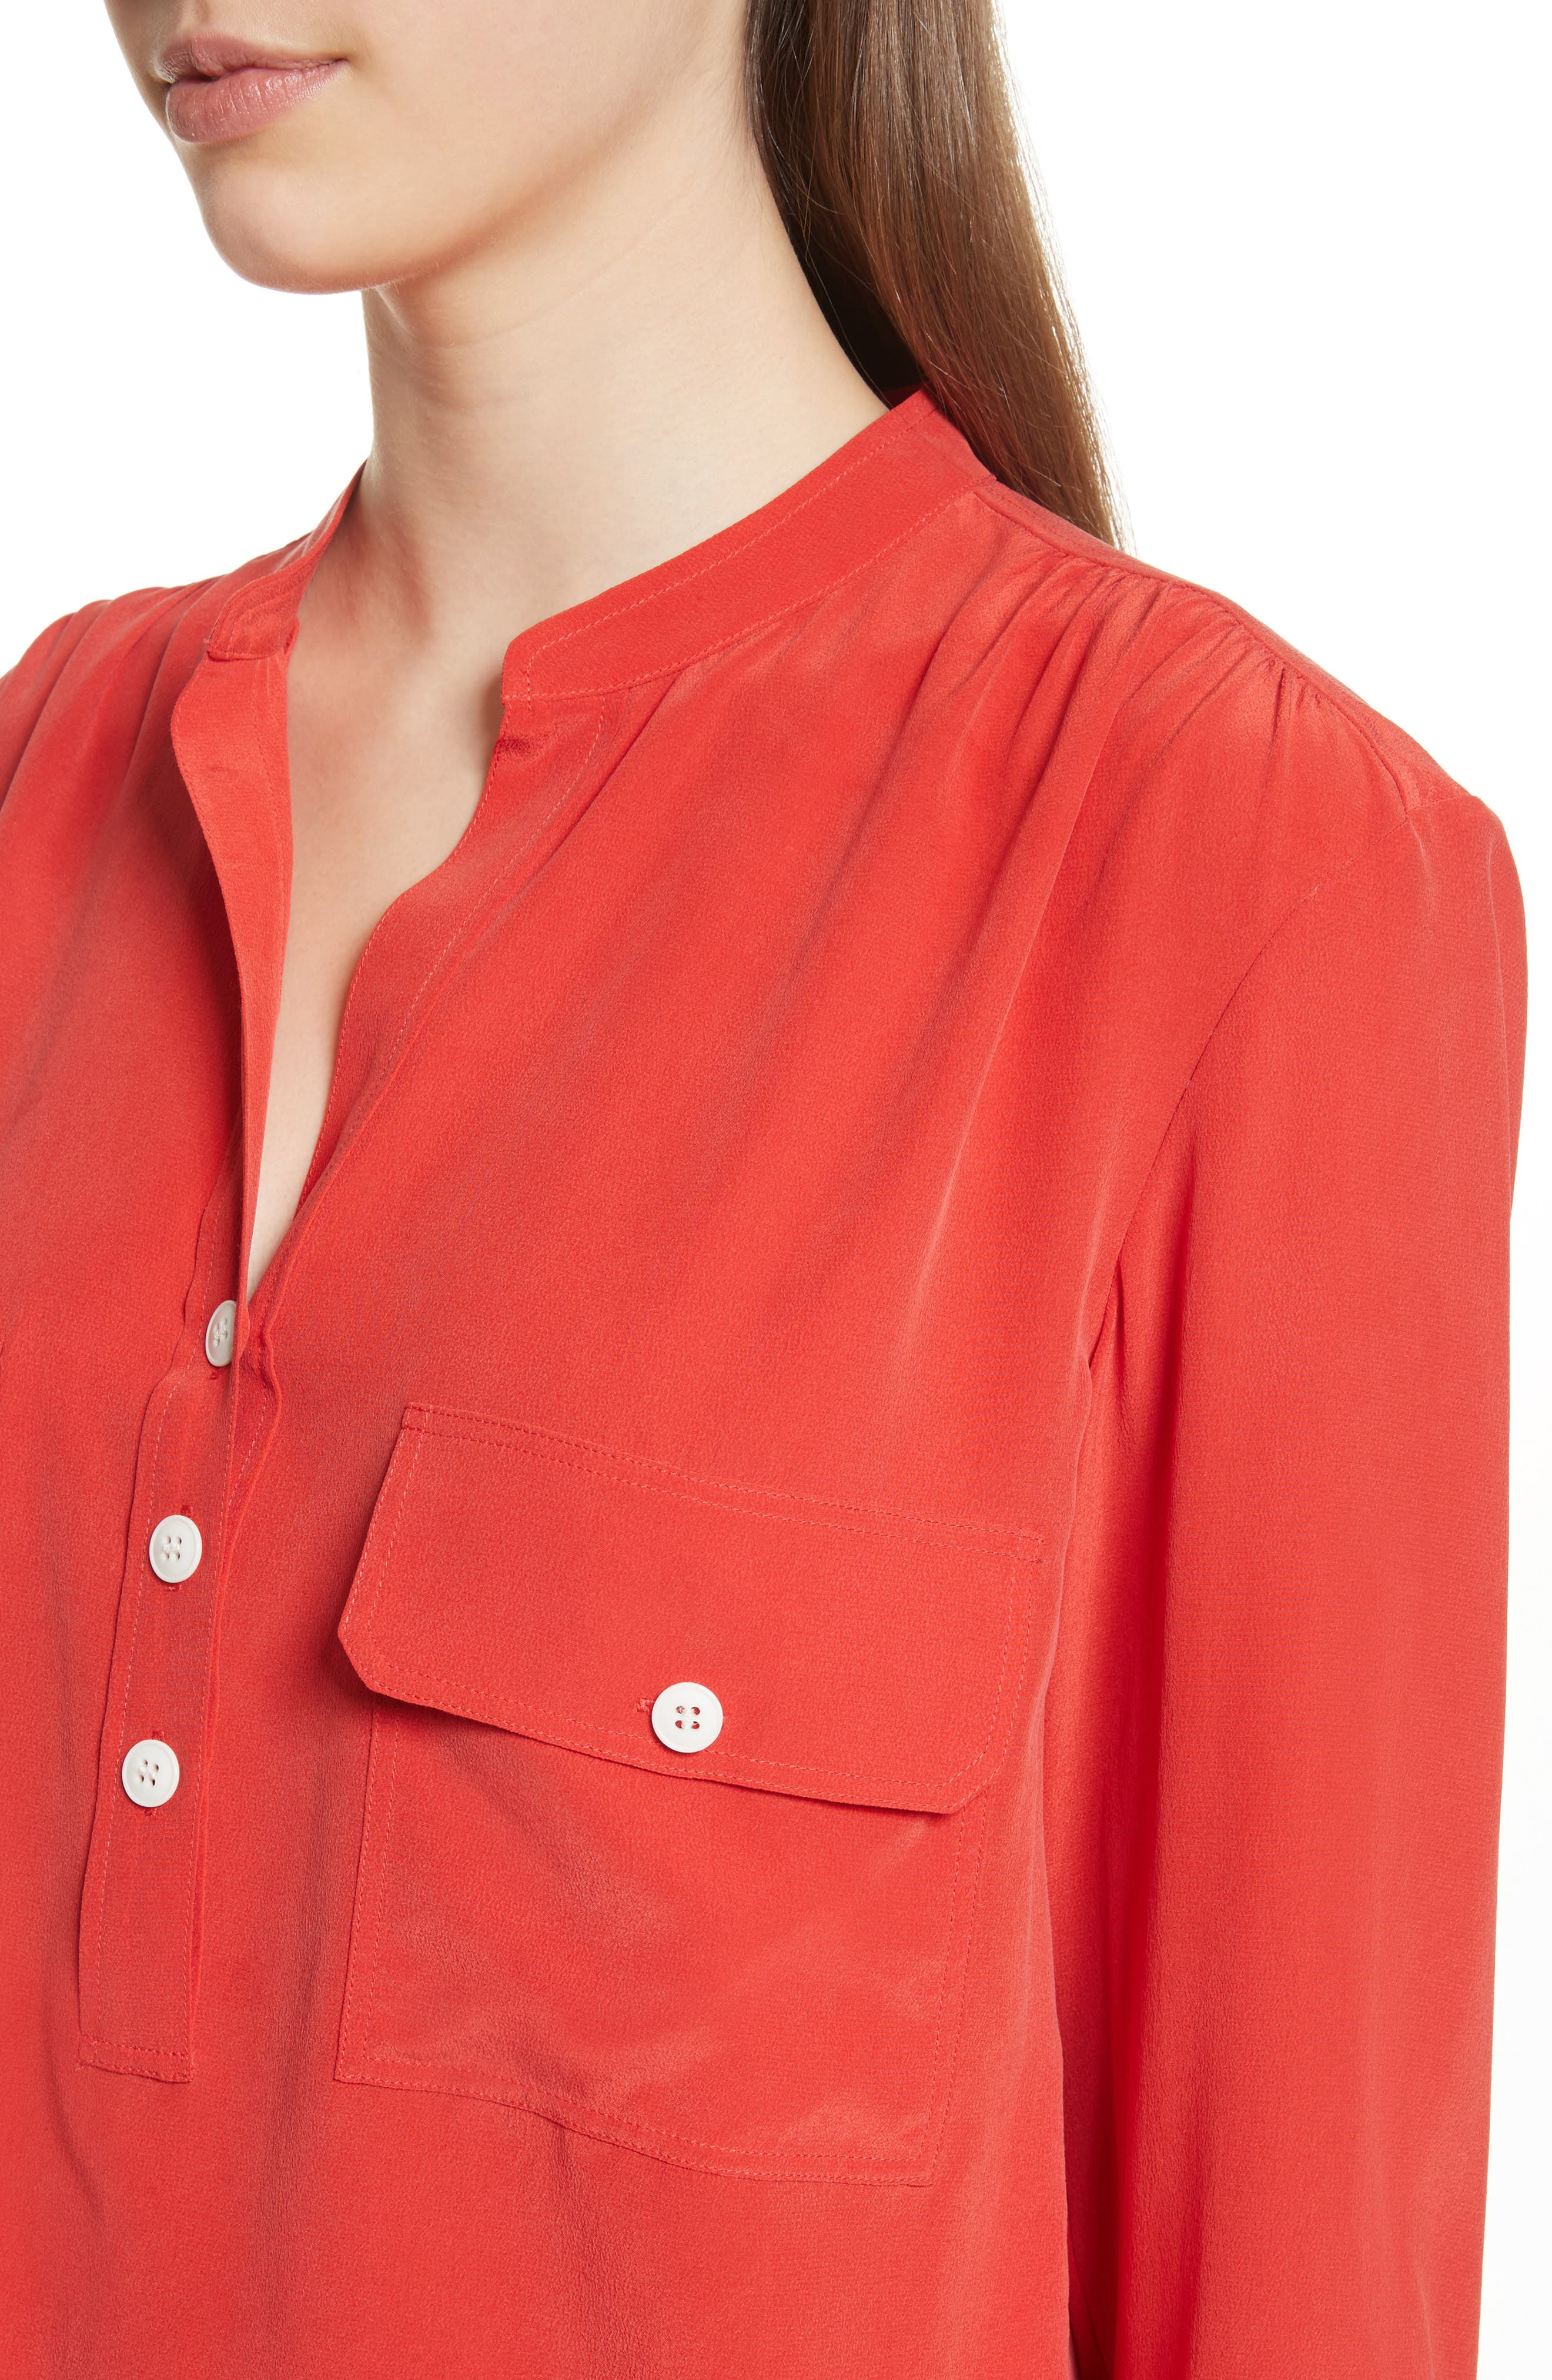 Utility Silk Blouse,                             Alternate thumbnail 4, color,                             Poppy